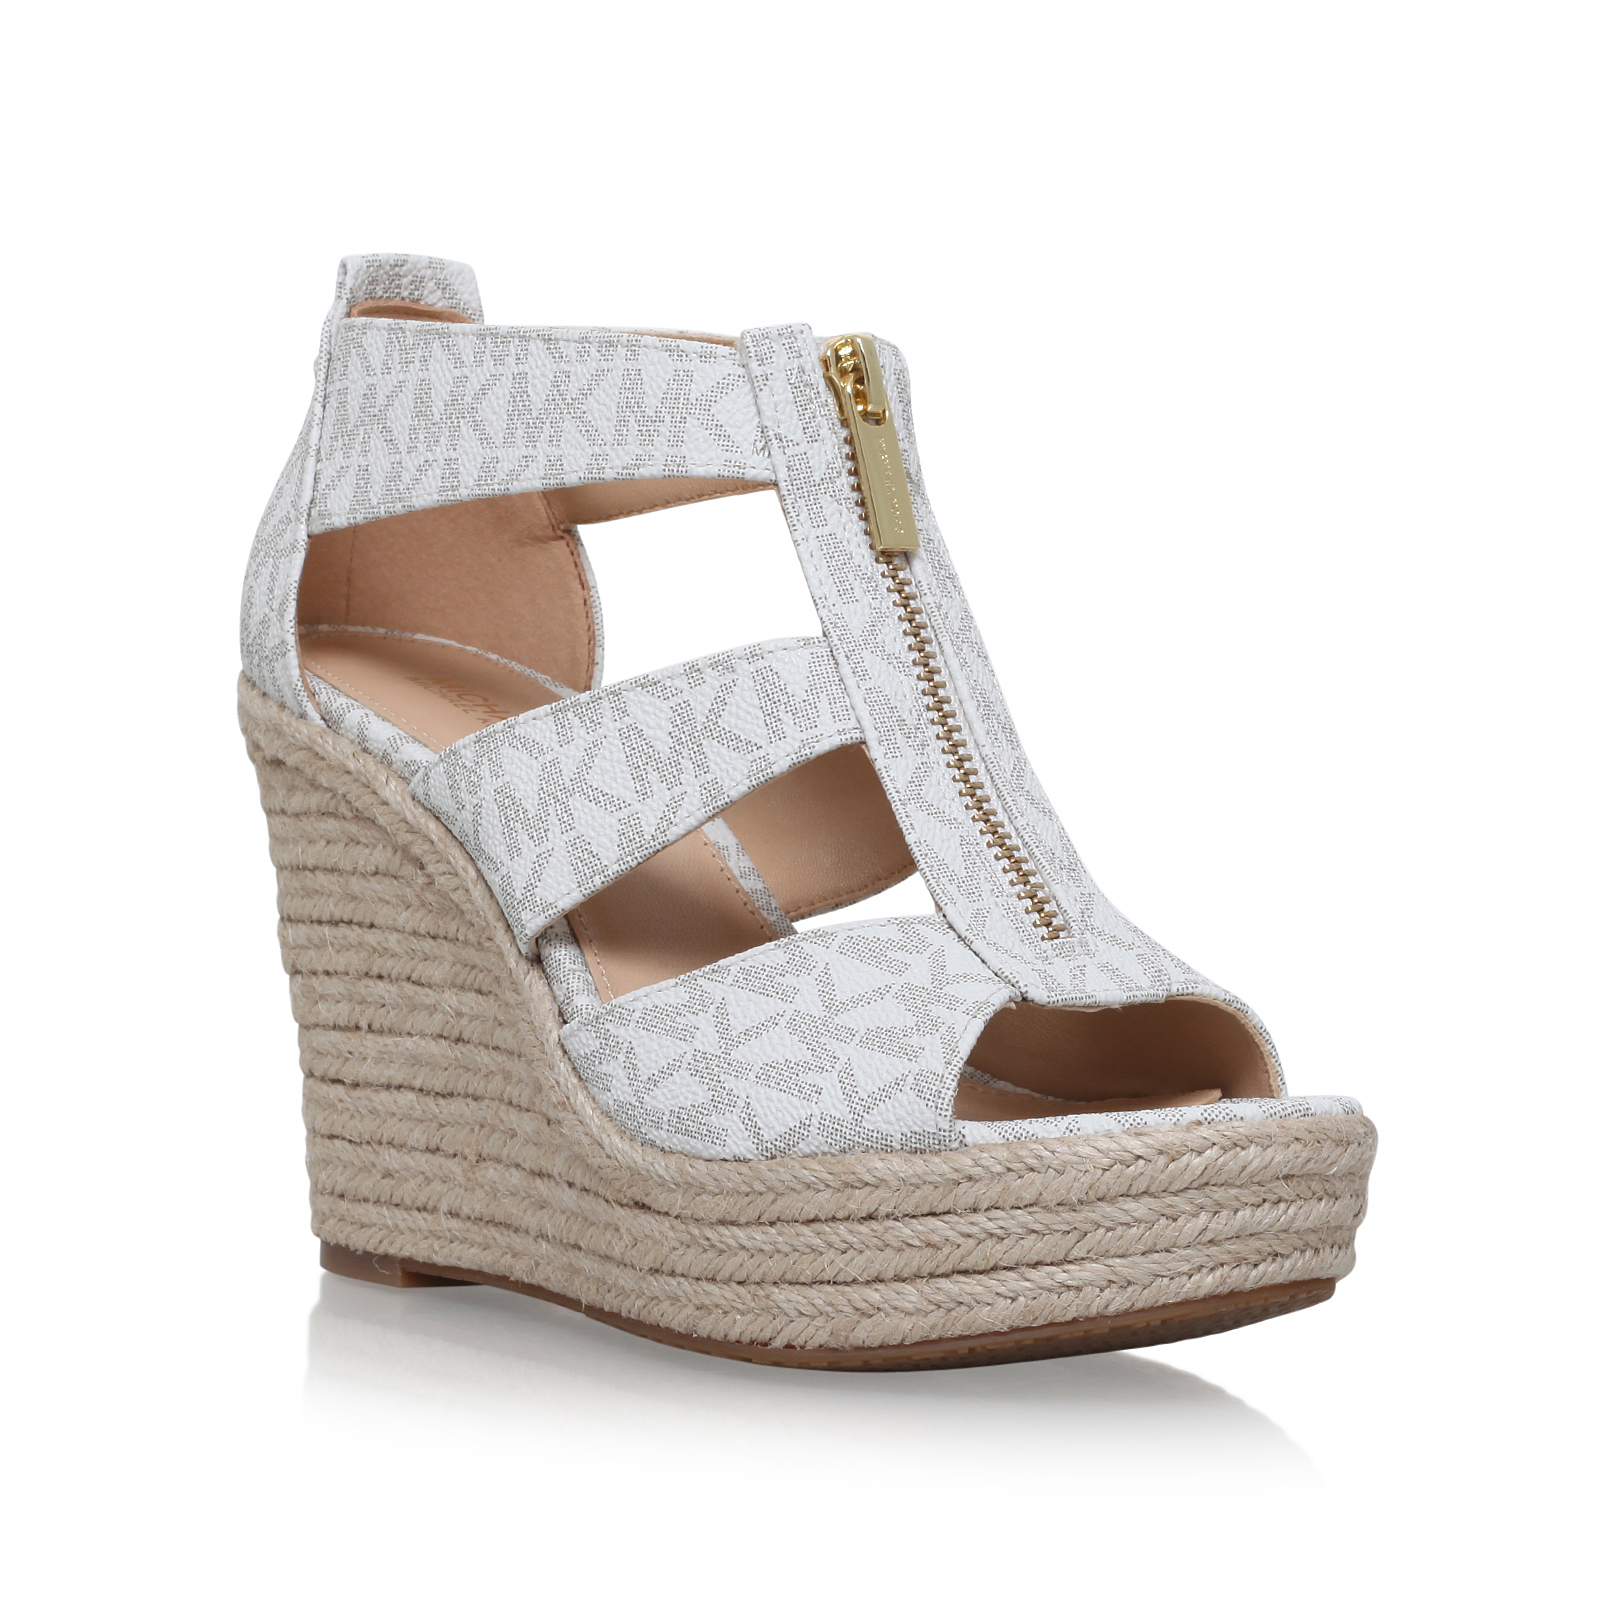 0bc1fa69d104 DAMITA WEDGE Michael Michael Kors Damita Winter White High Heel ...